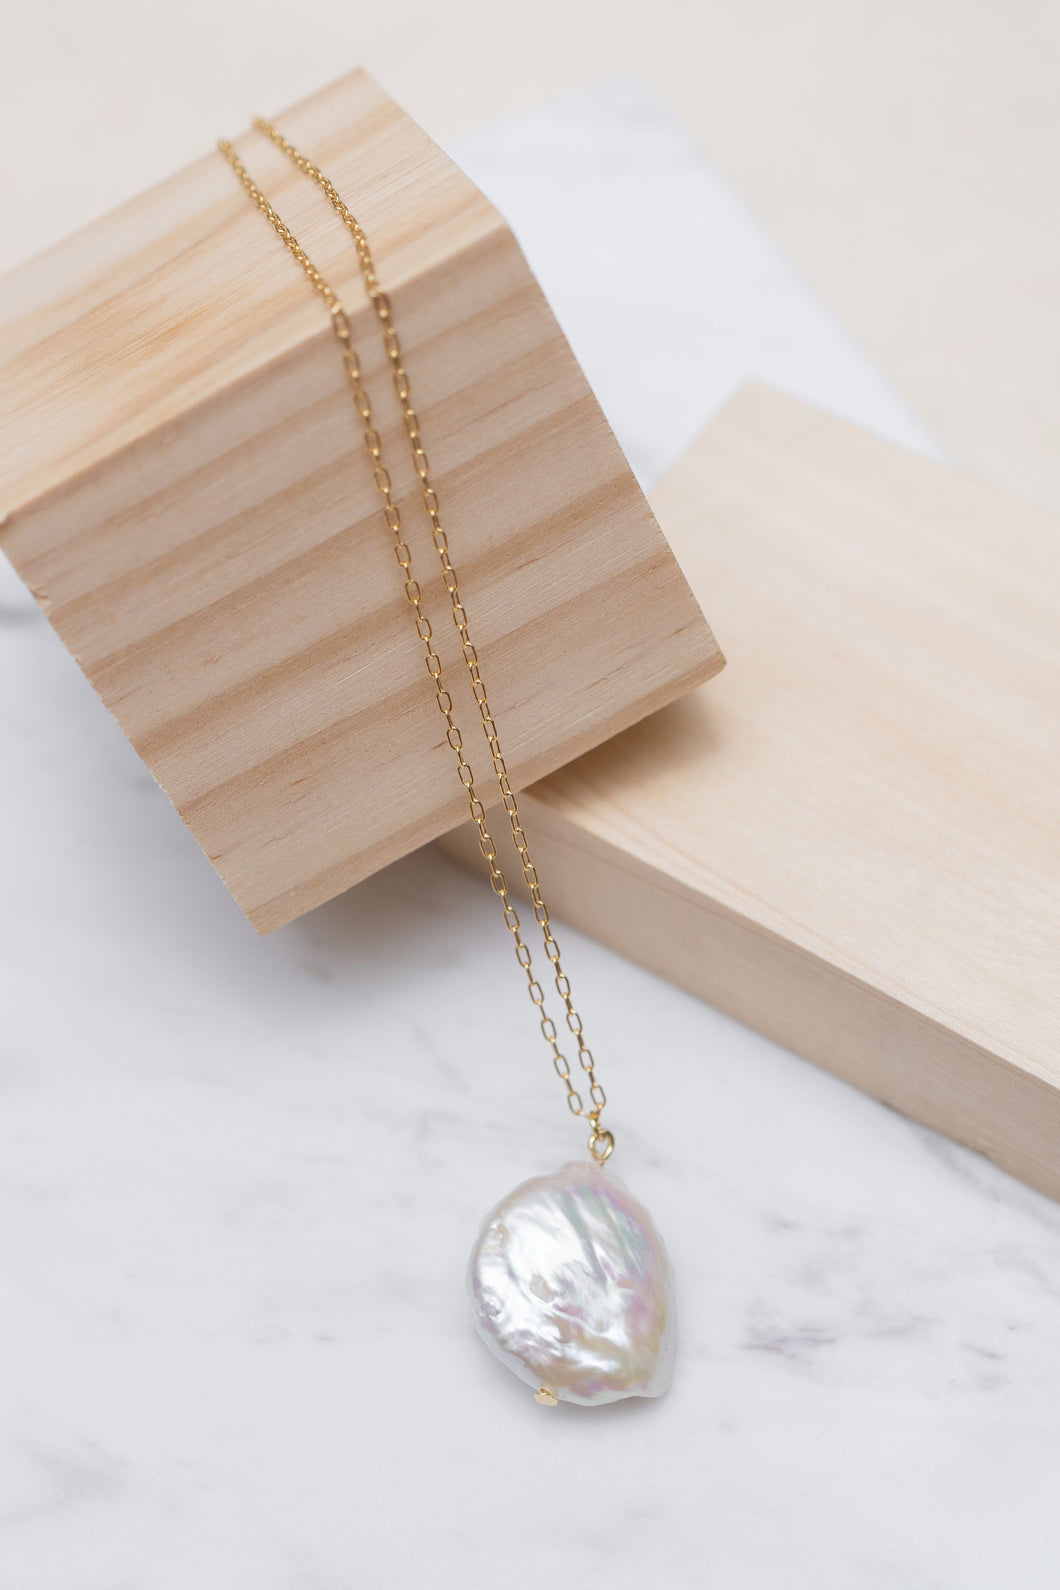 [NEW] Freshwater Pearl Grand Necklace by Nuavo